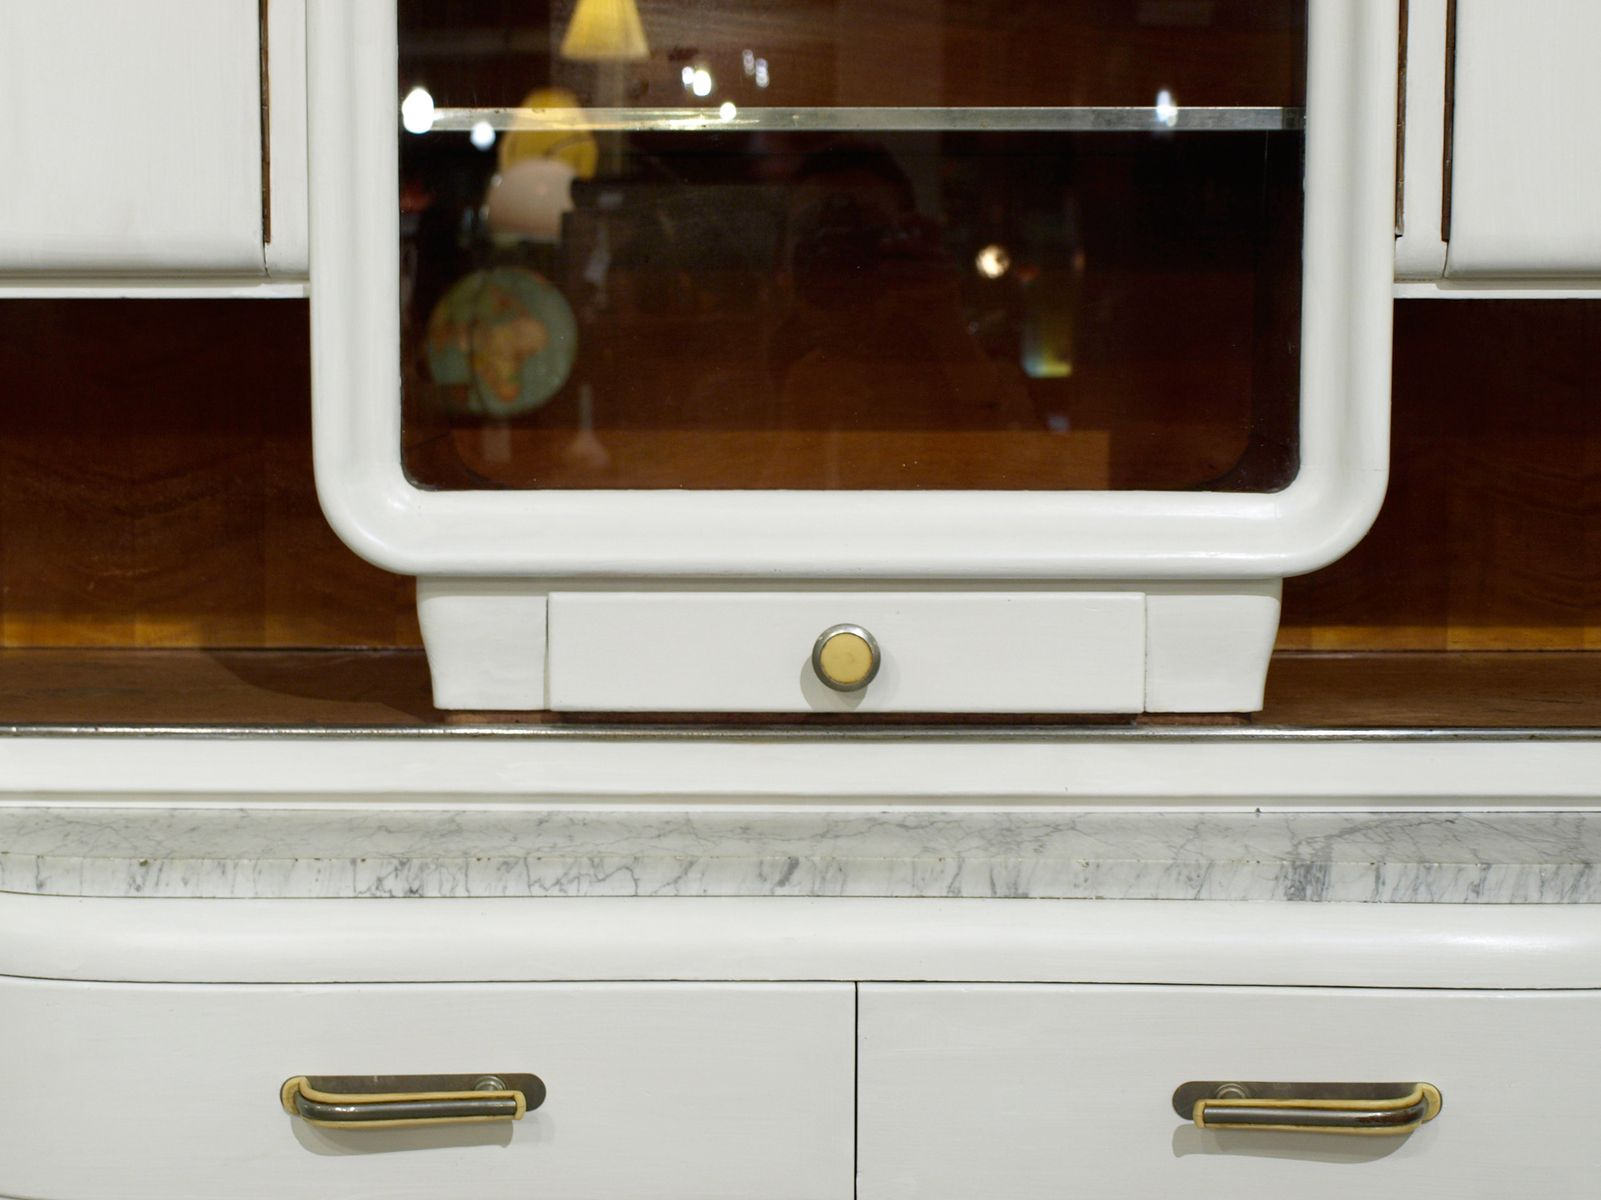 vintage kitchen cabinet by niestrath 1930s for sale at pamono harrison made in chicago vintage all steel kitchen cabinet